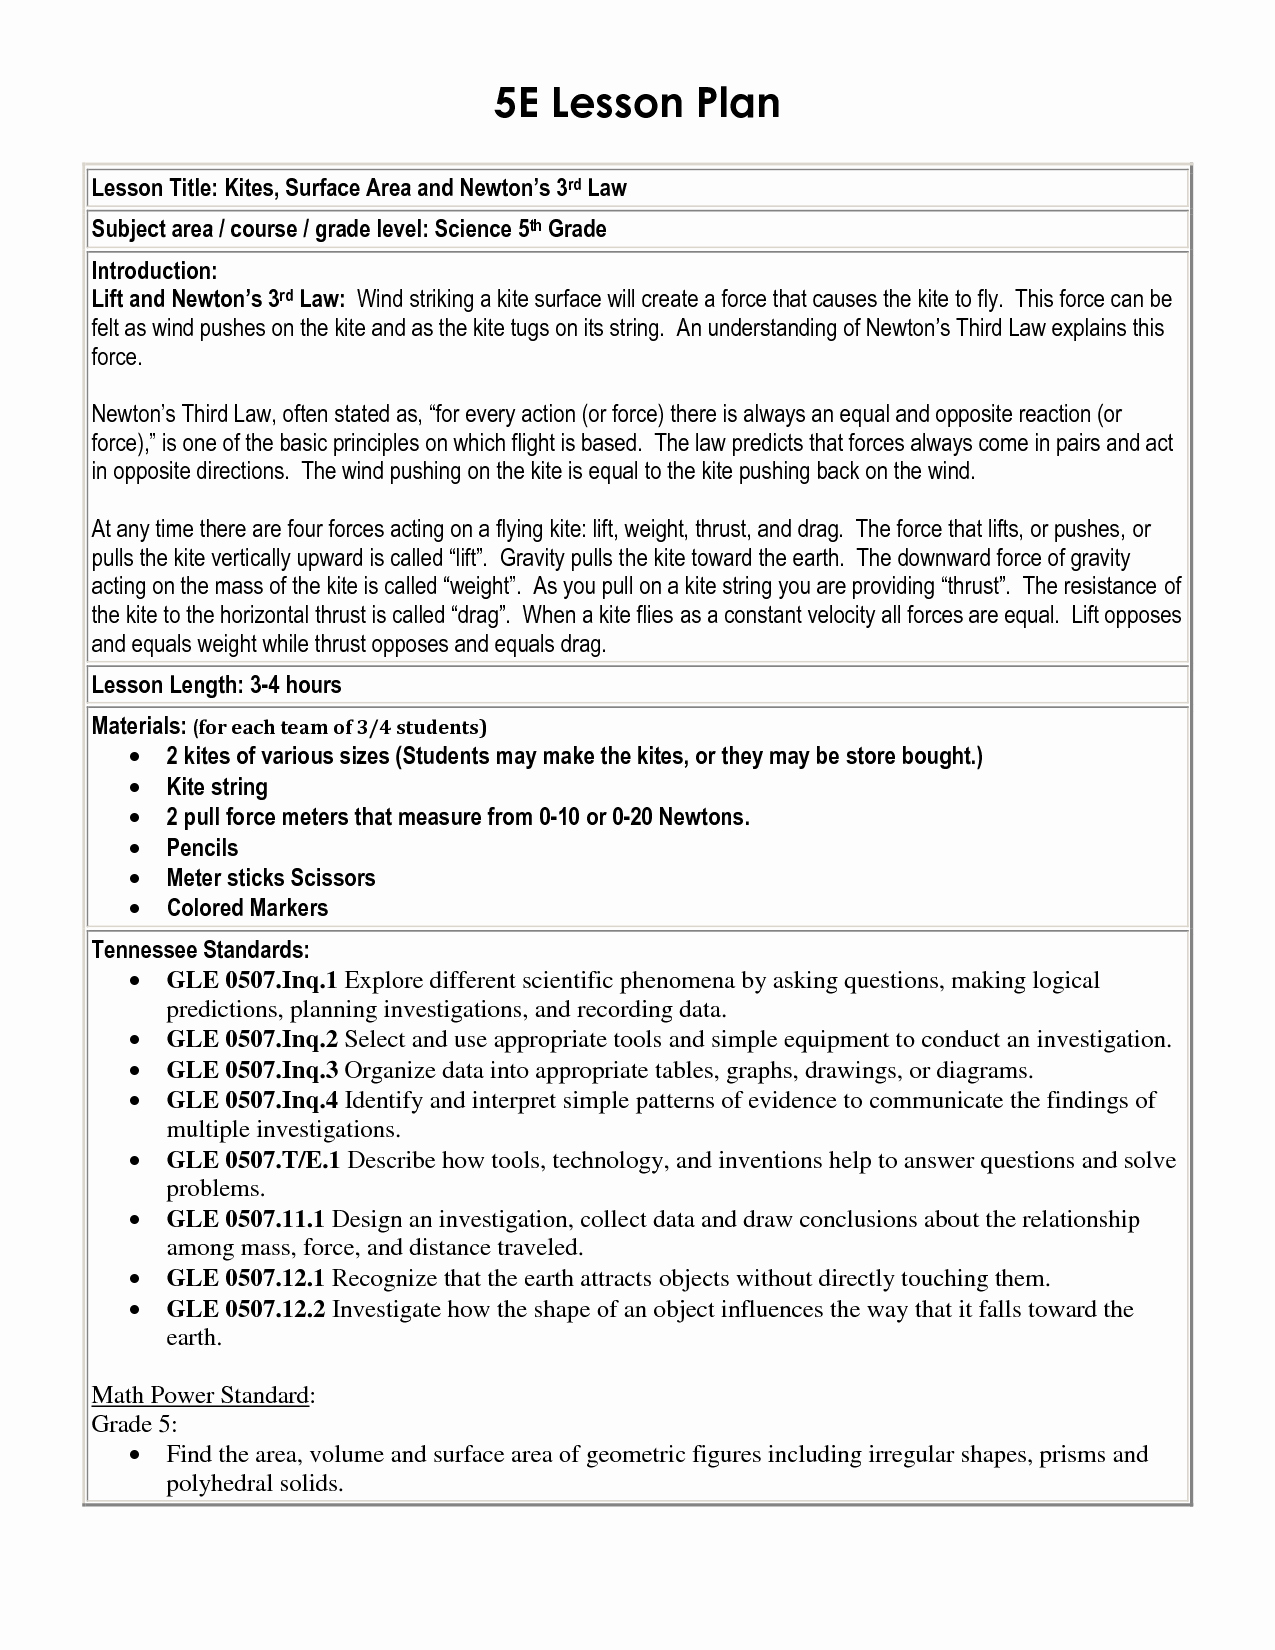 Mini Lesson Plan Template Lovely 5th Grade Math Lesson Plan Templates – Mini Lesson Plan